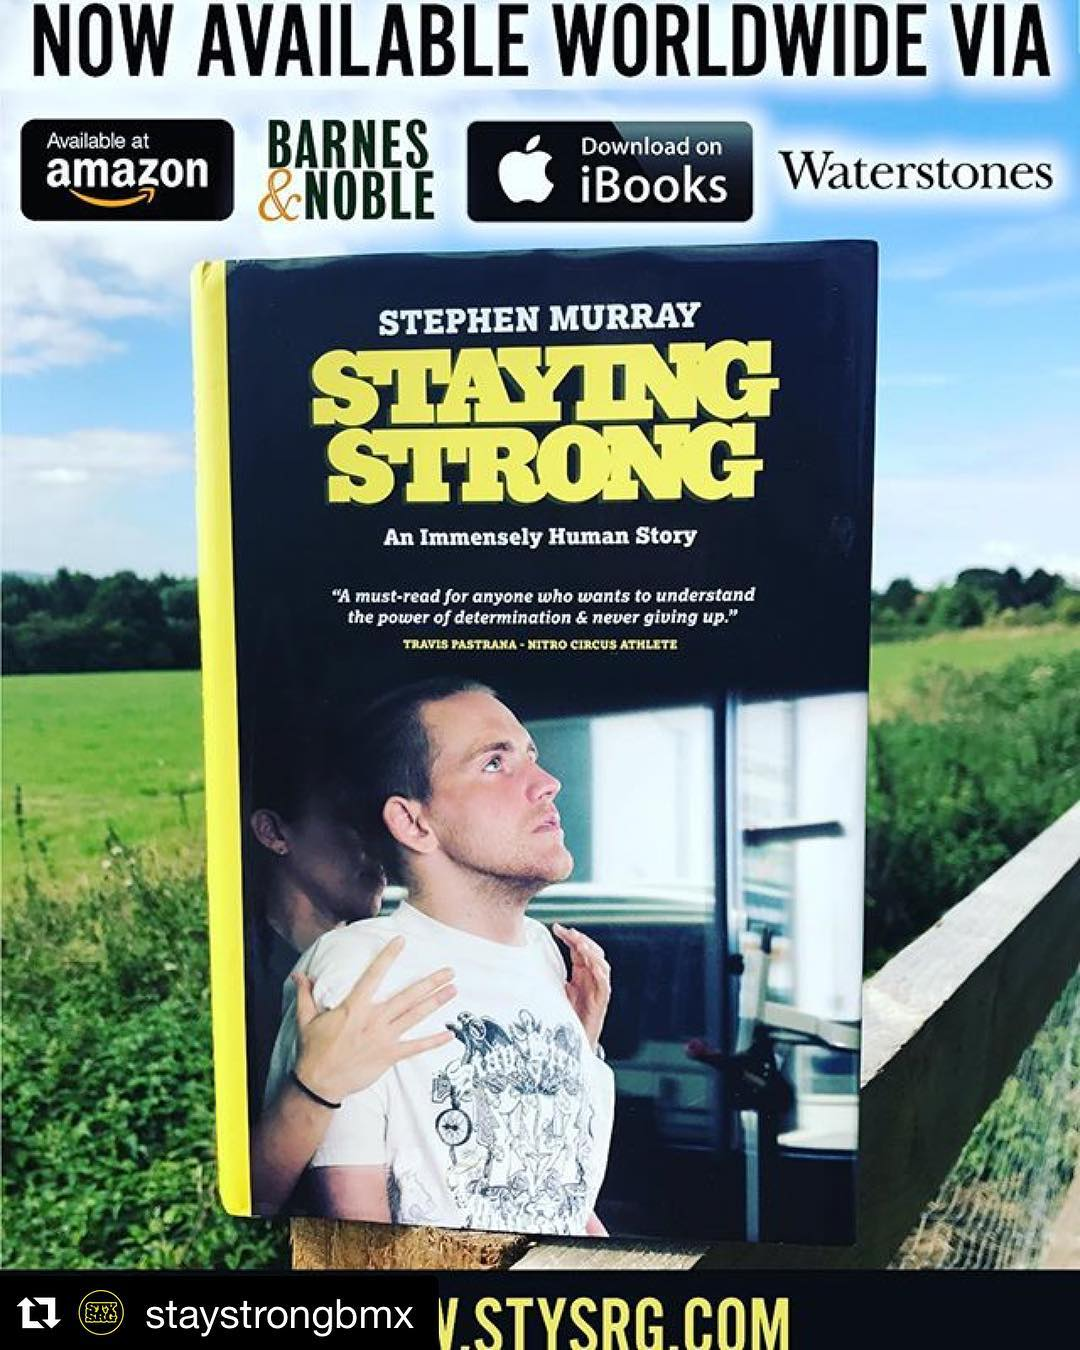 This is so inspiring!Stephen is a true warrior!  I could not put it down.  A must read.  #Repost @staystrongbmx ・・・ Stoked to announce that my book Staying Strong is now available worldwide in print and digital via Amazon, iBooks, Barnes&Noble, Waterstones and the Stay Strong website. Thanks to everyone who's bought one so far, I've been stoked on the feedback! For those yet to buy one, hopefully it should be easier to do so now from any of these outlets. Thanks. Stephen.